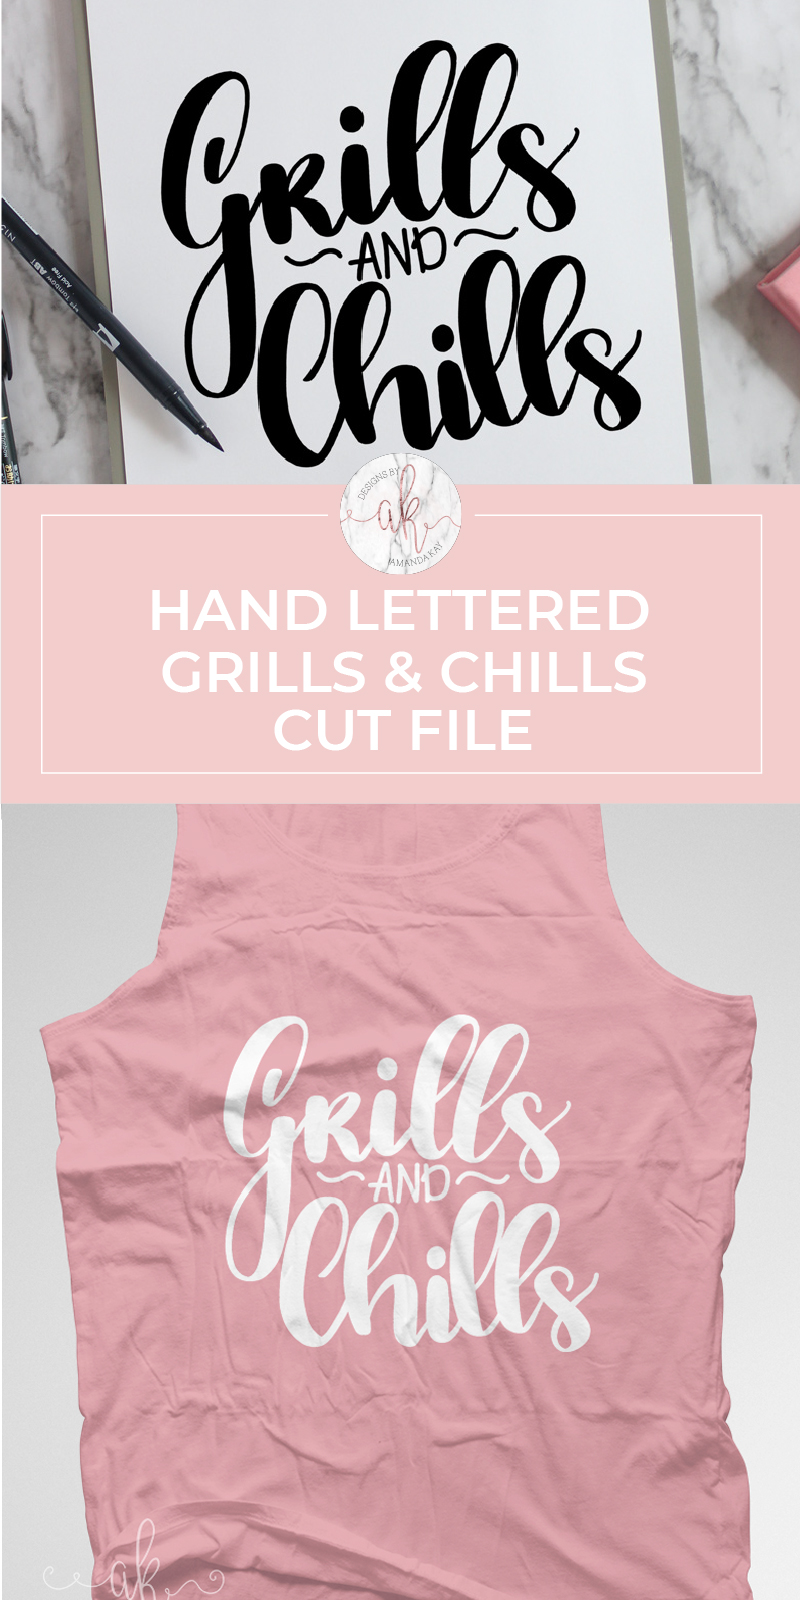 Grab a free hand lettered grills and chills cut file perfect for Summer crafting